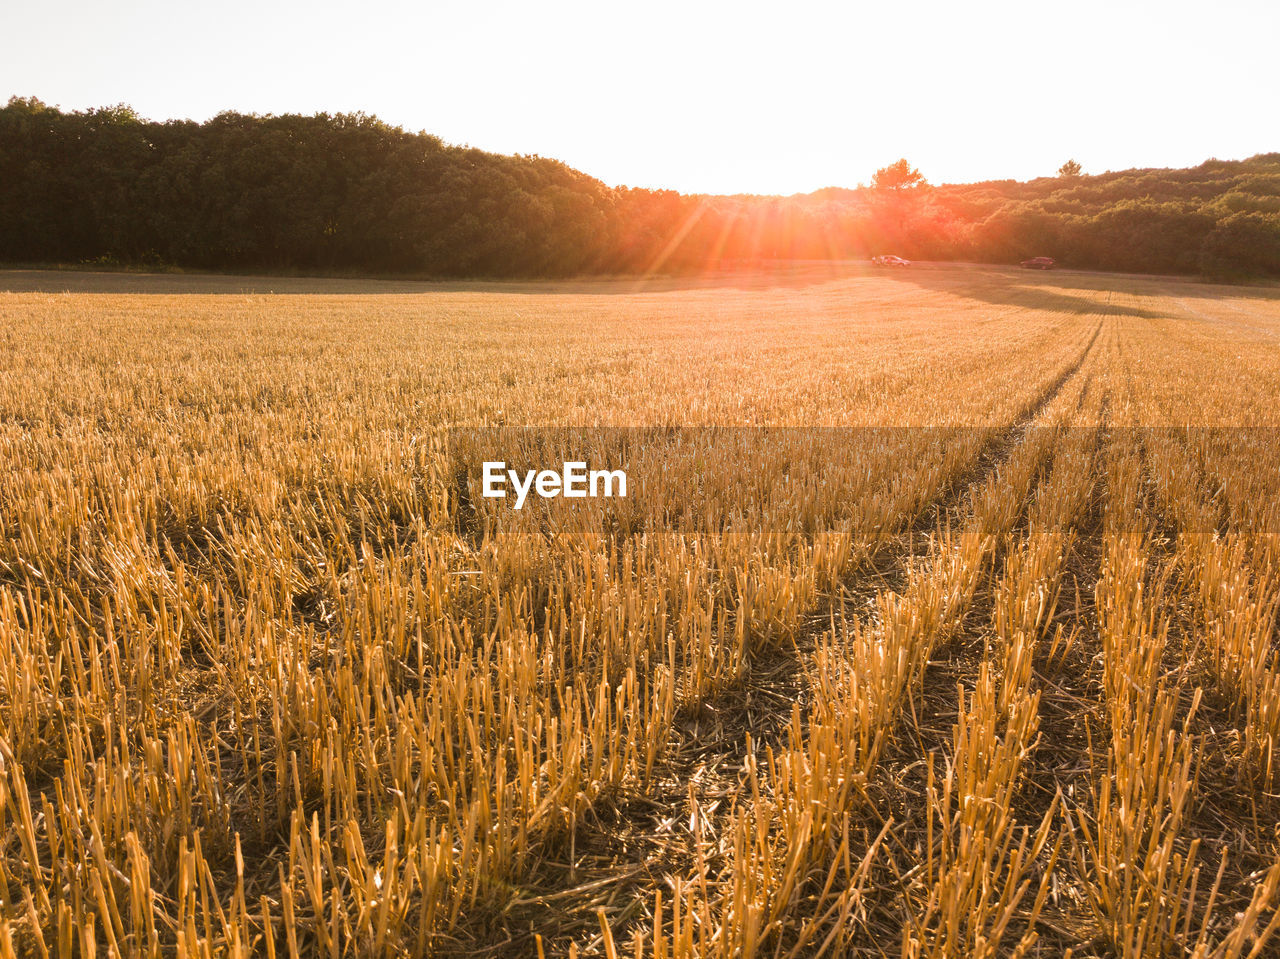 agriculture, landscape, field, rural scene, crop, land, sky, plant, cereal plant, tranquility, growth, environment, farm, tranquil scene, nature, no people, wheat, beauty in nature, scenics - nature, sunlight, outdoors, stalk